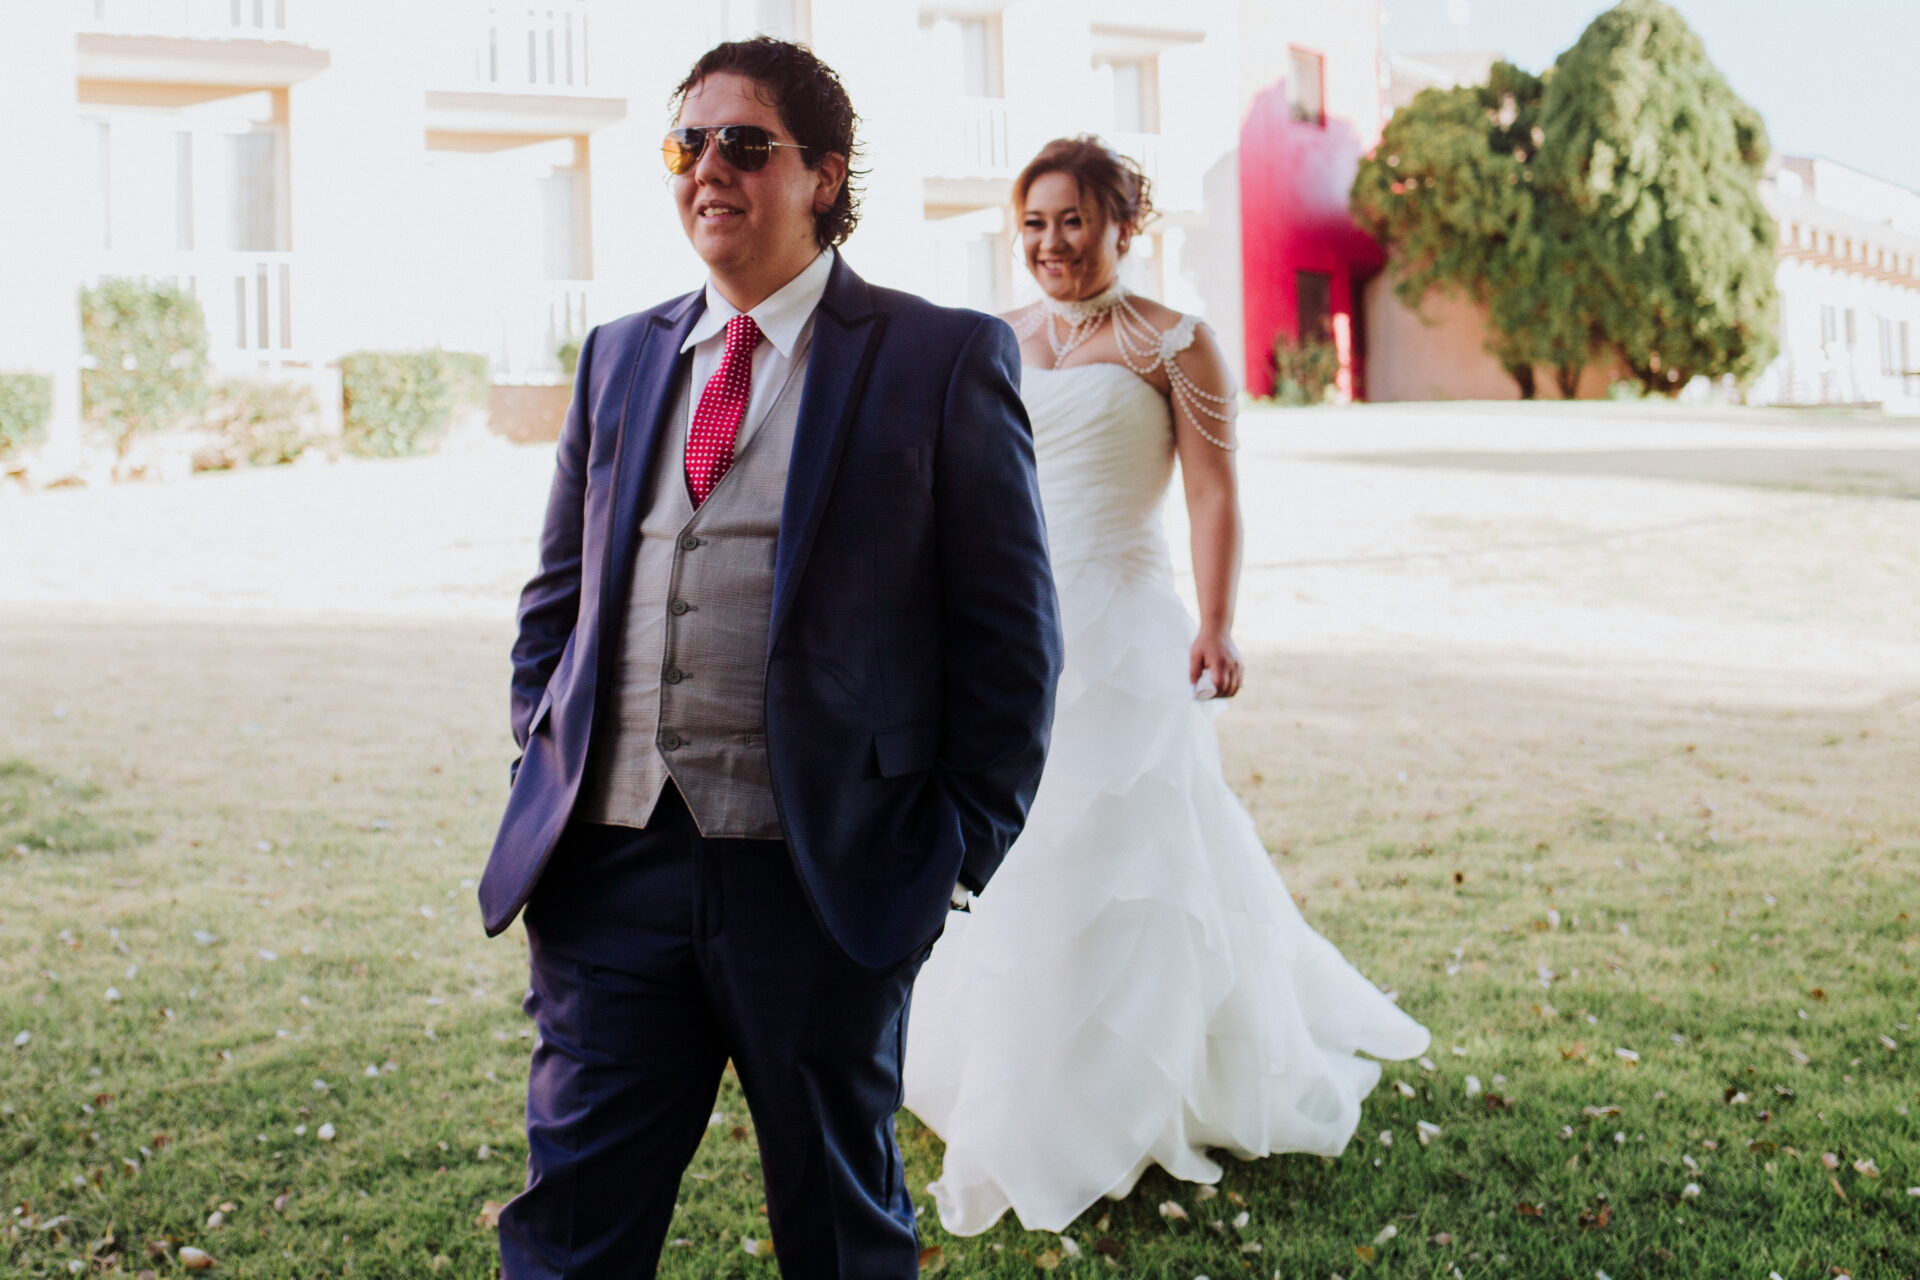 javier_noriega_fotografo_bodas_gaviones_zacatecas_wedding_photographer11